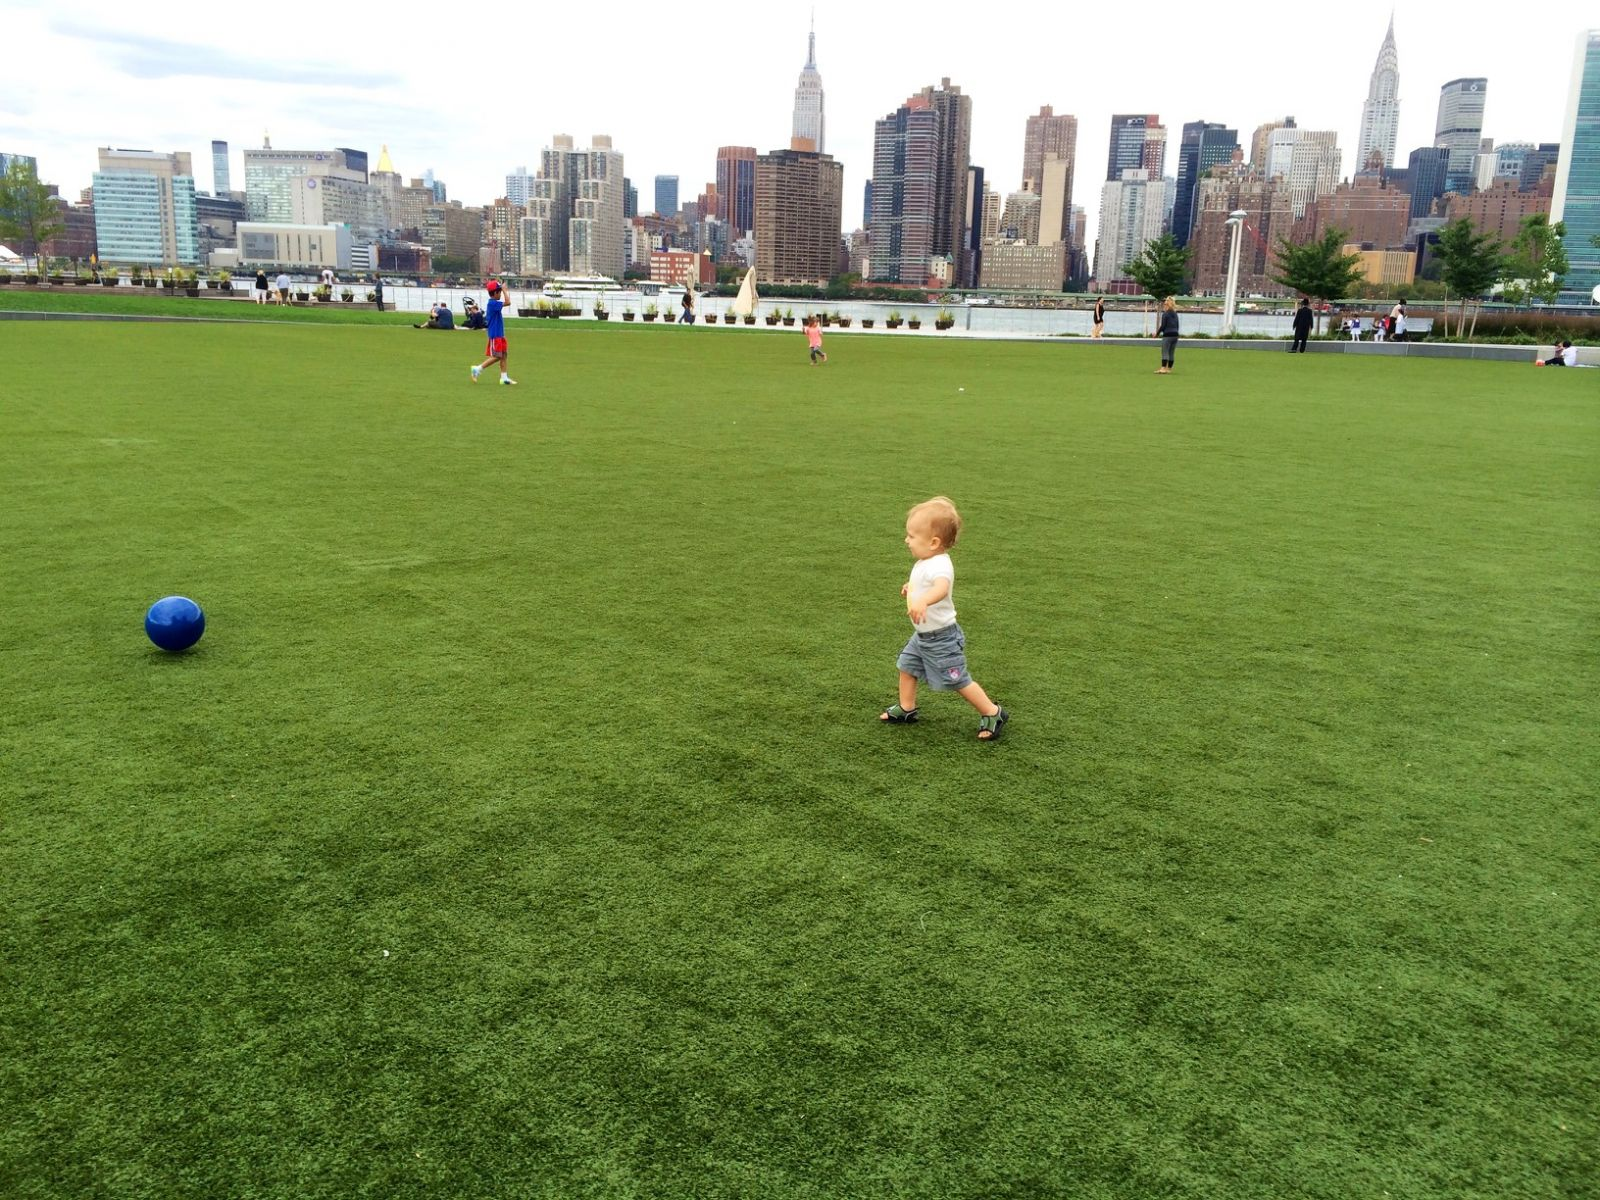 Child playing in front of NYC skyline